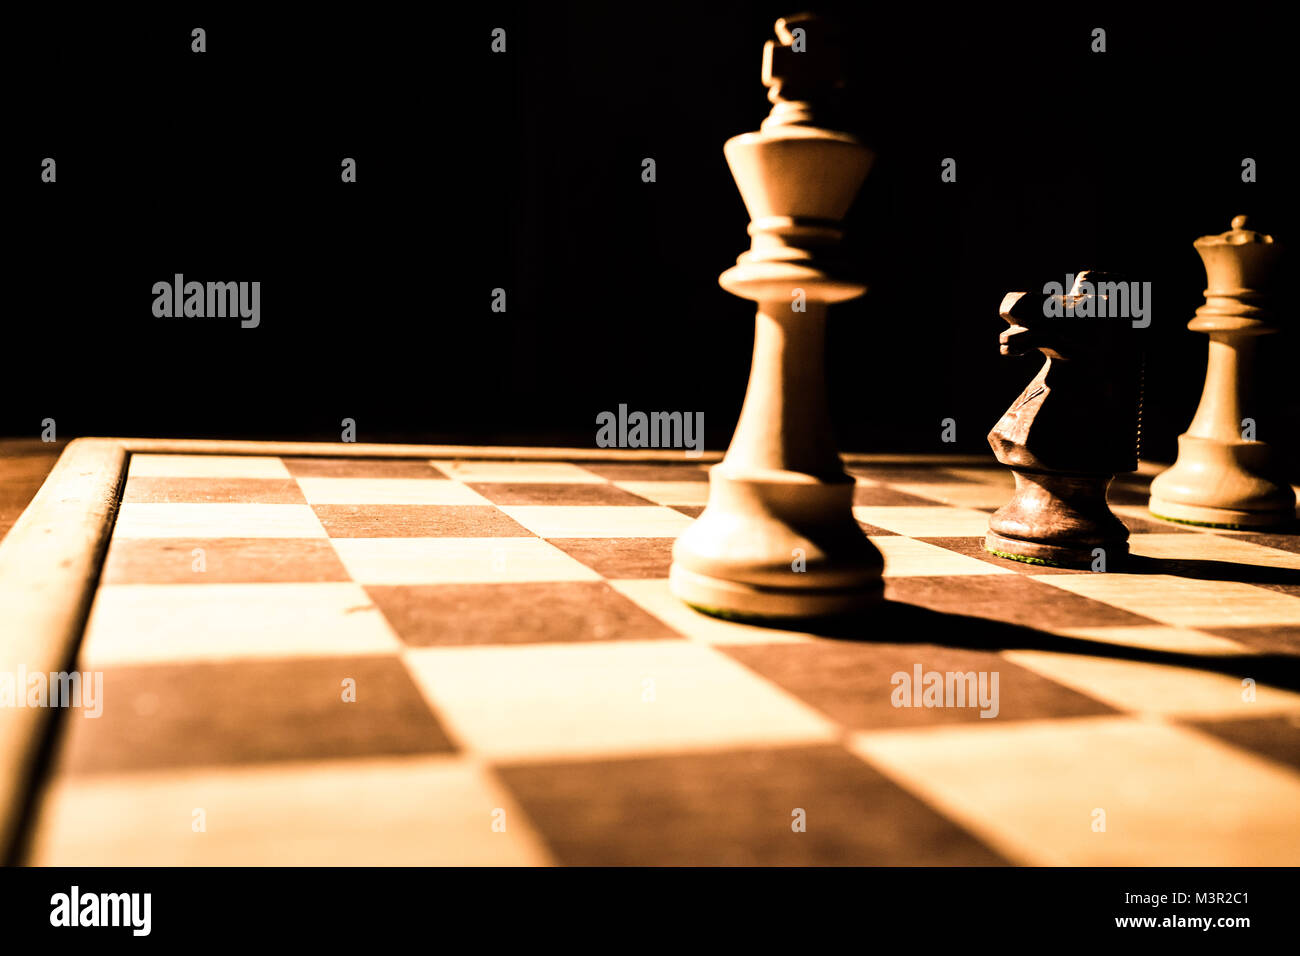 Chess game - Stock Image